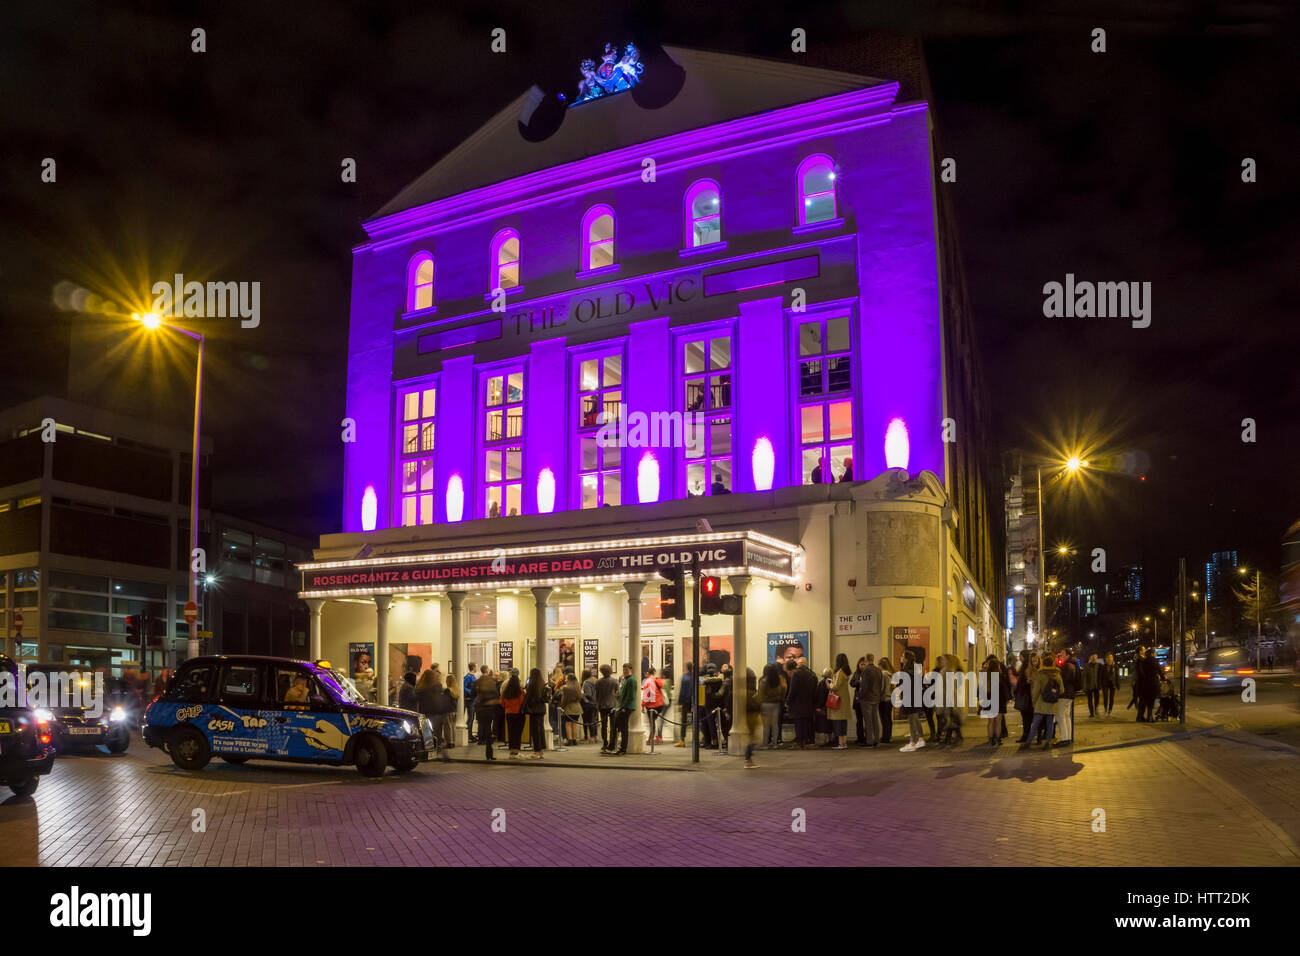 The Old Vic at night with people queuing to see Rosencrantz and Guildenstern are Dead by Tom Stoppard. - Stock Image